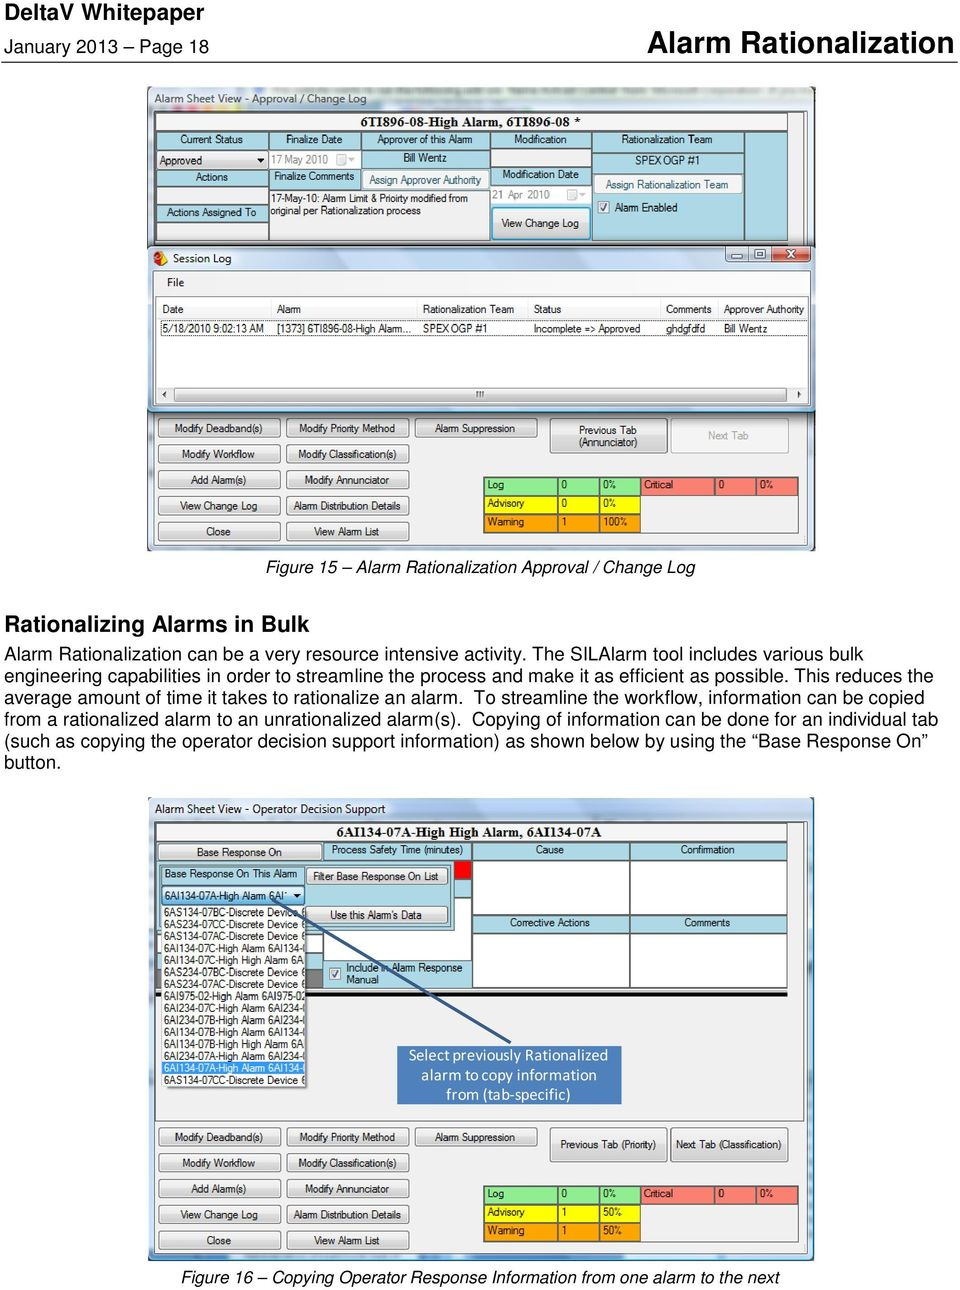 This reduces the average amount of time it takes to rationalize an alarm. To streamline the workflow, information can be copied from a rationalized alarm to an unrationalized alarm(s).